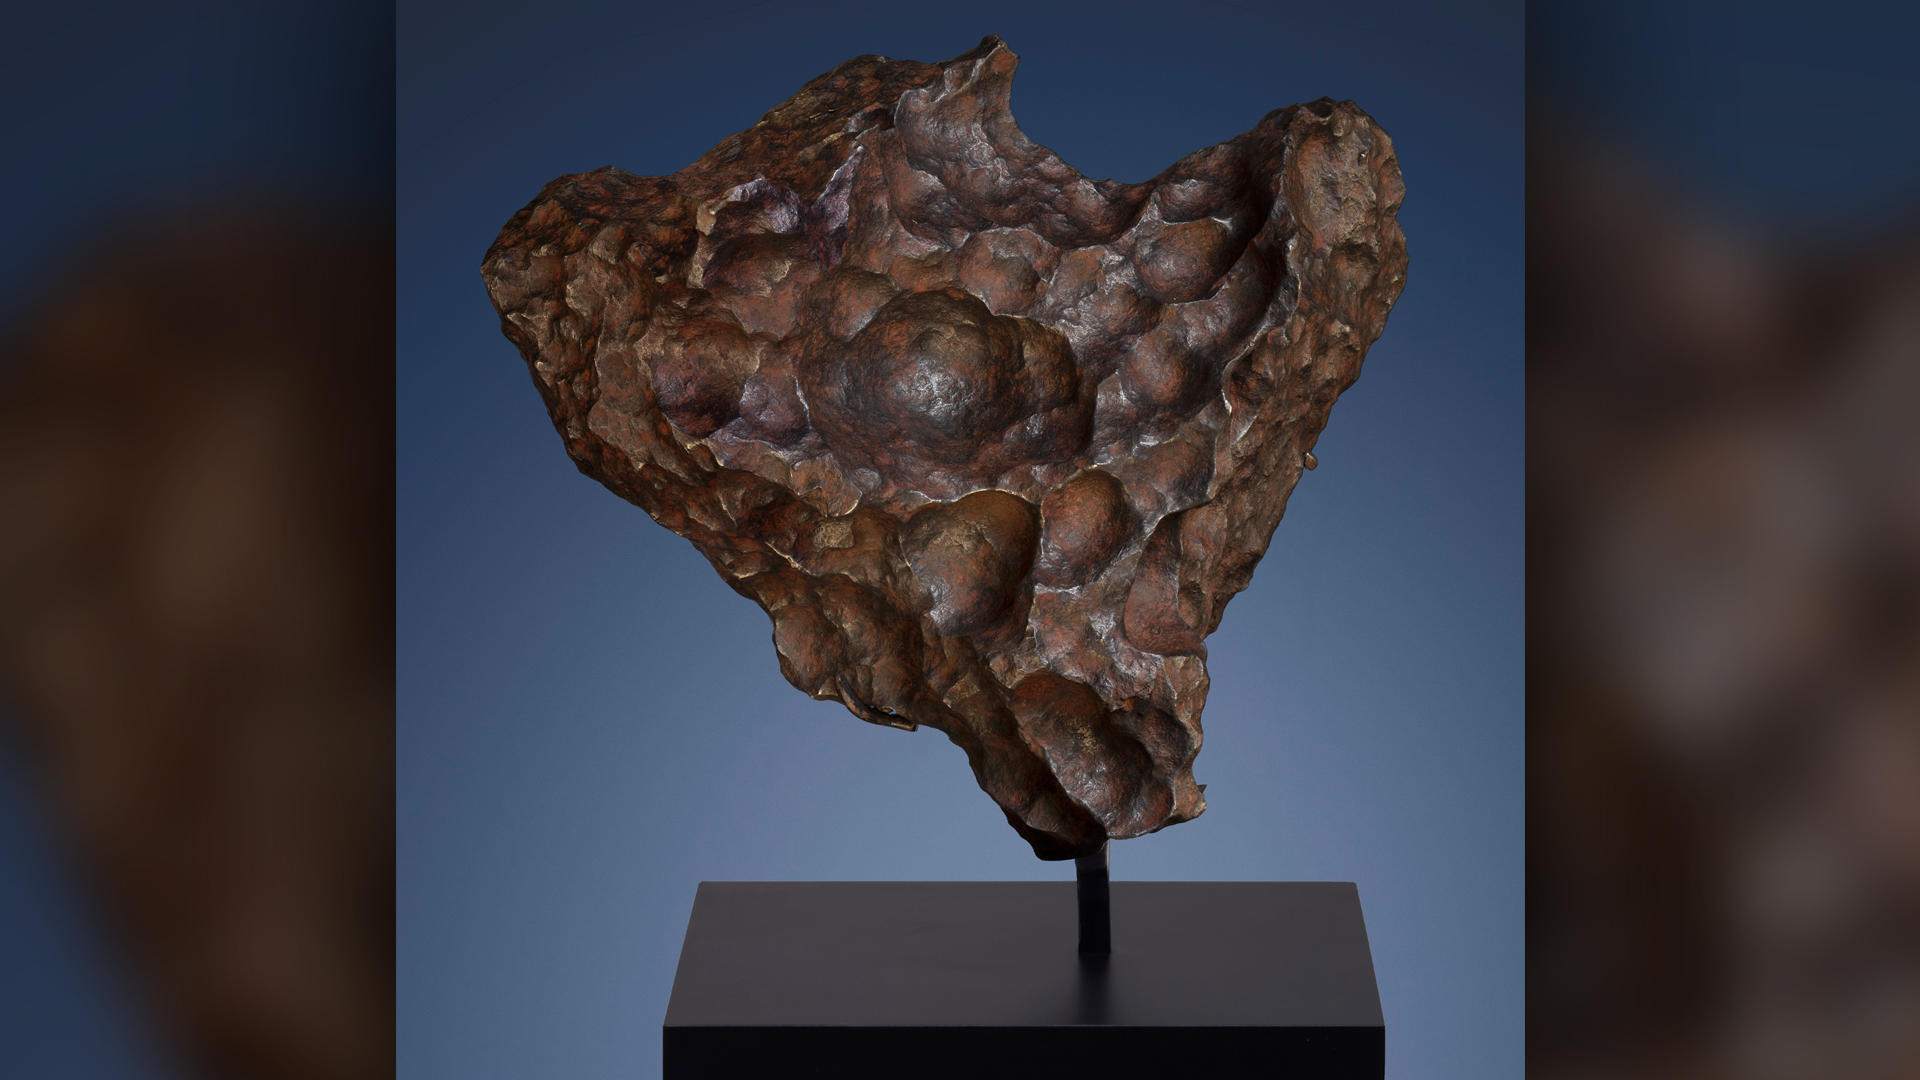 A piece of the Gibeon meteorite, which originated as the iron core of an asteroid that formed 4.5 billion years ago.